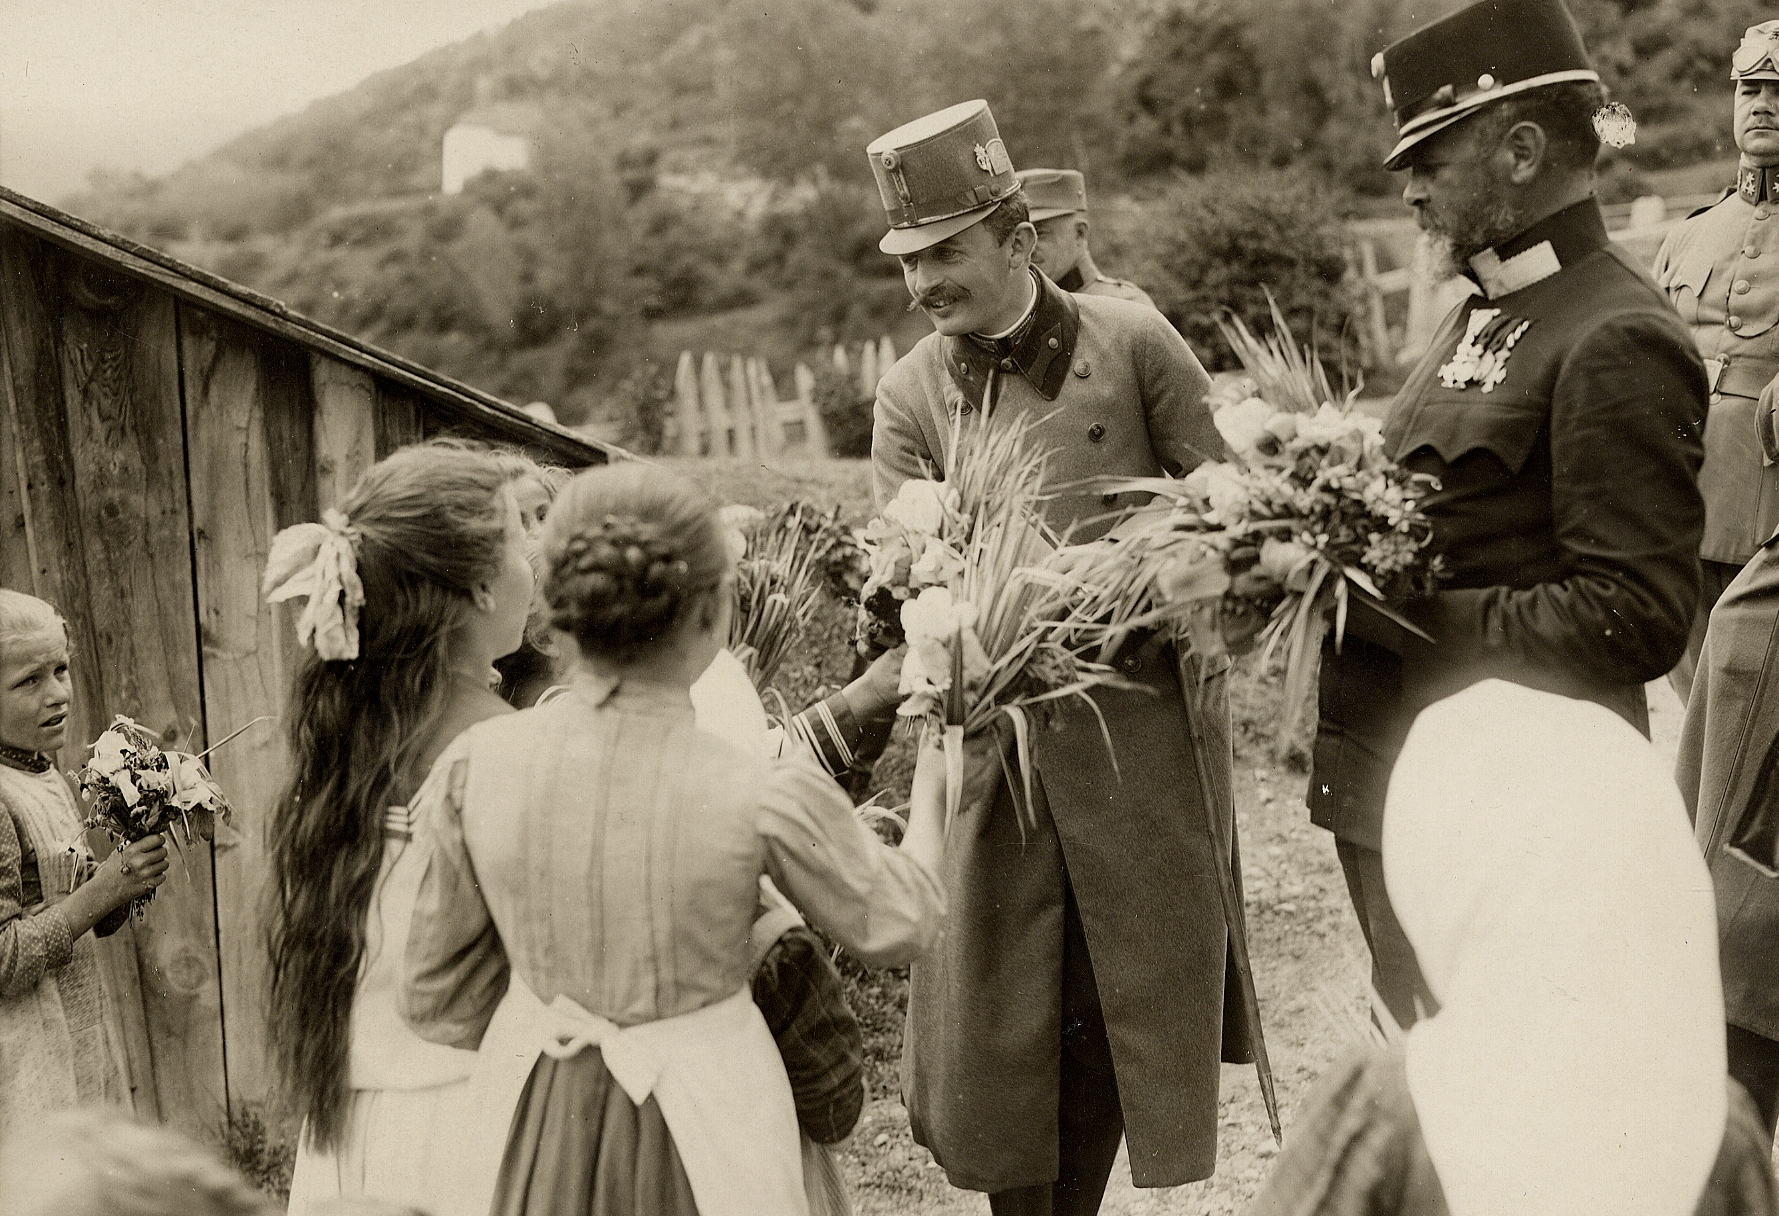 Emperor Karl receives floral gifts from his people.